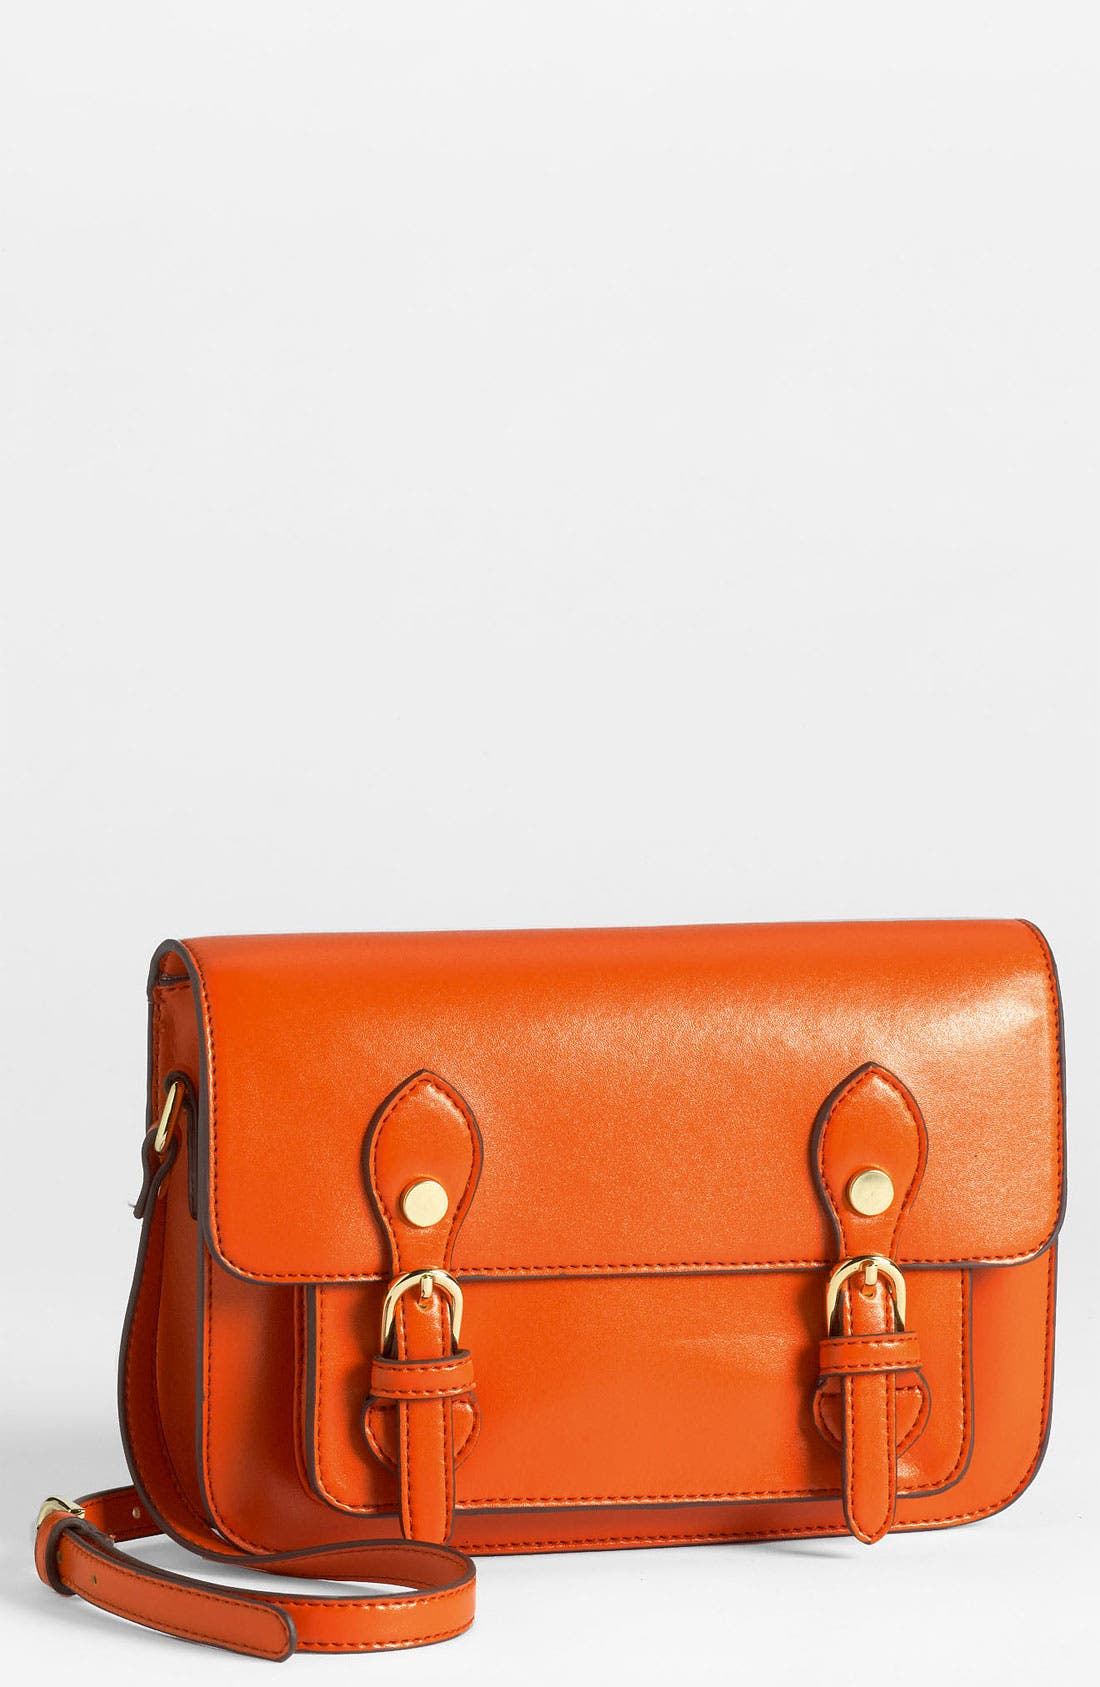 Main Image - Steven by Steve Madden Crossbody Bag